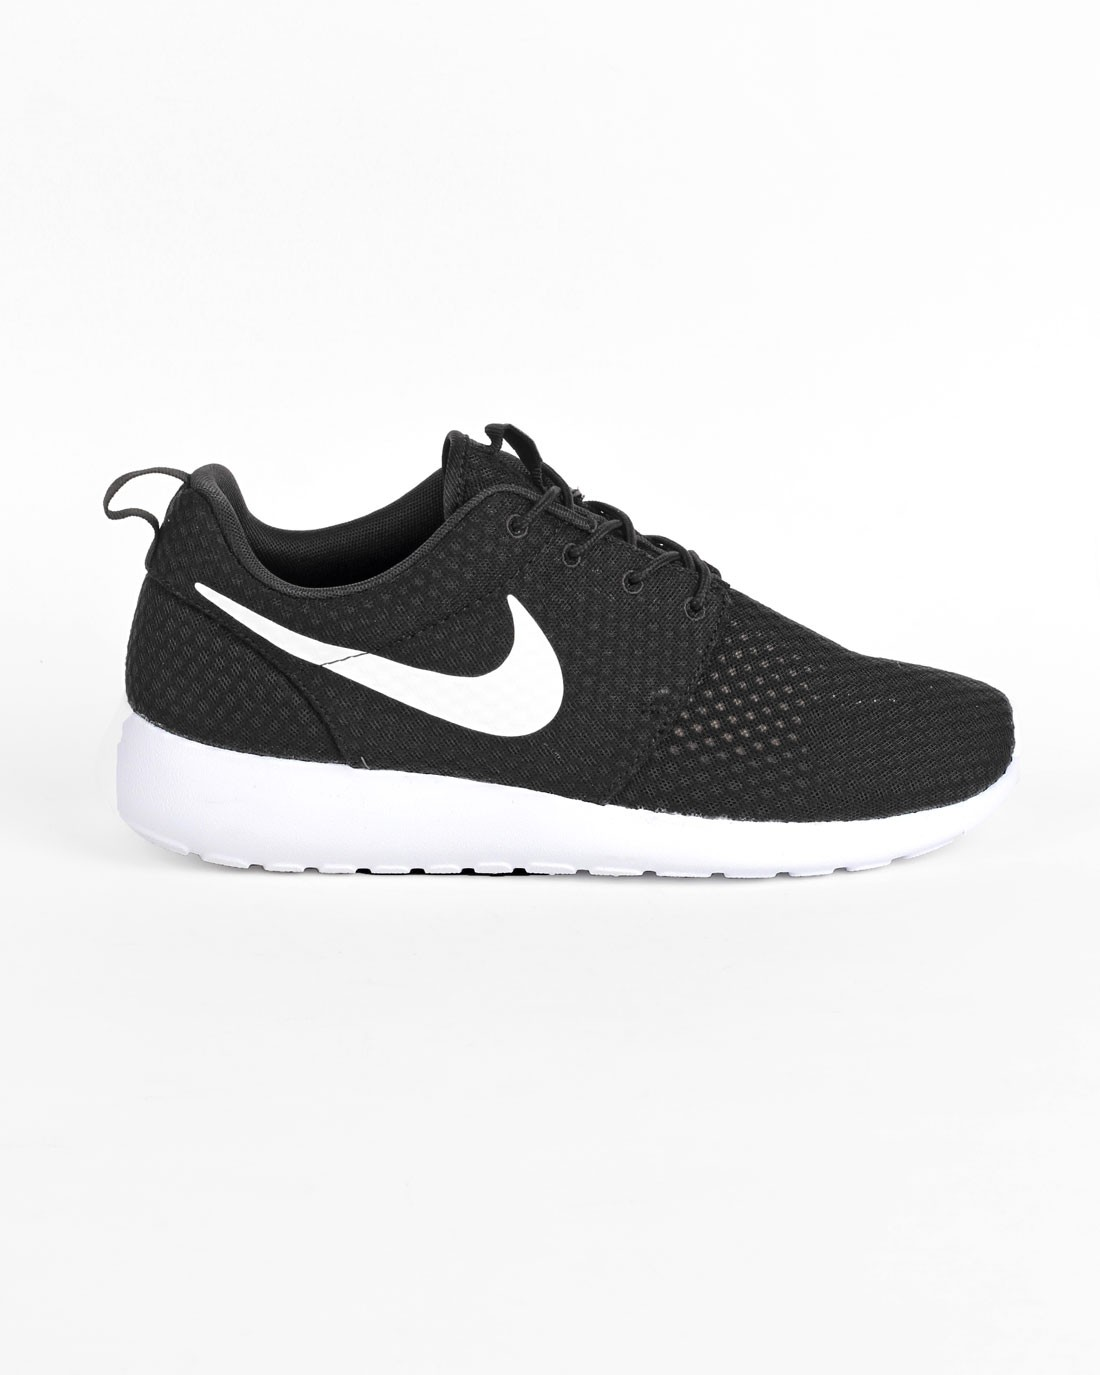 "Femme Nike Roshe One BR (Breeze) ""Monochrome Pack"" Sneakers Noir Blanc 718552-011"